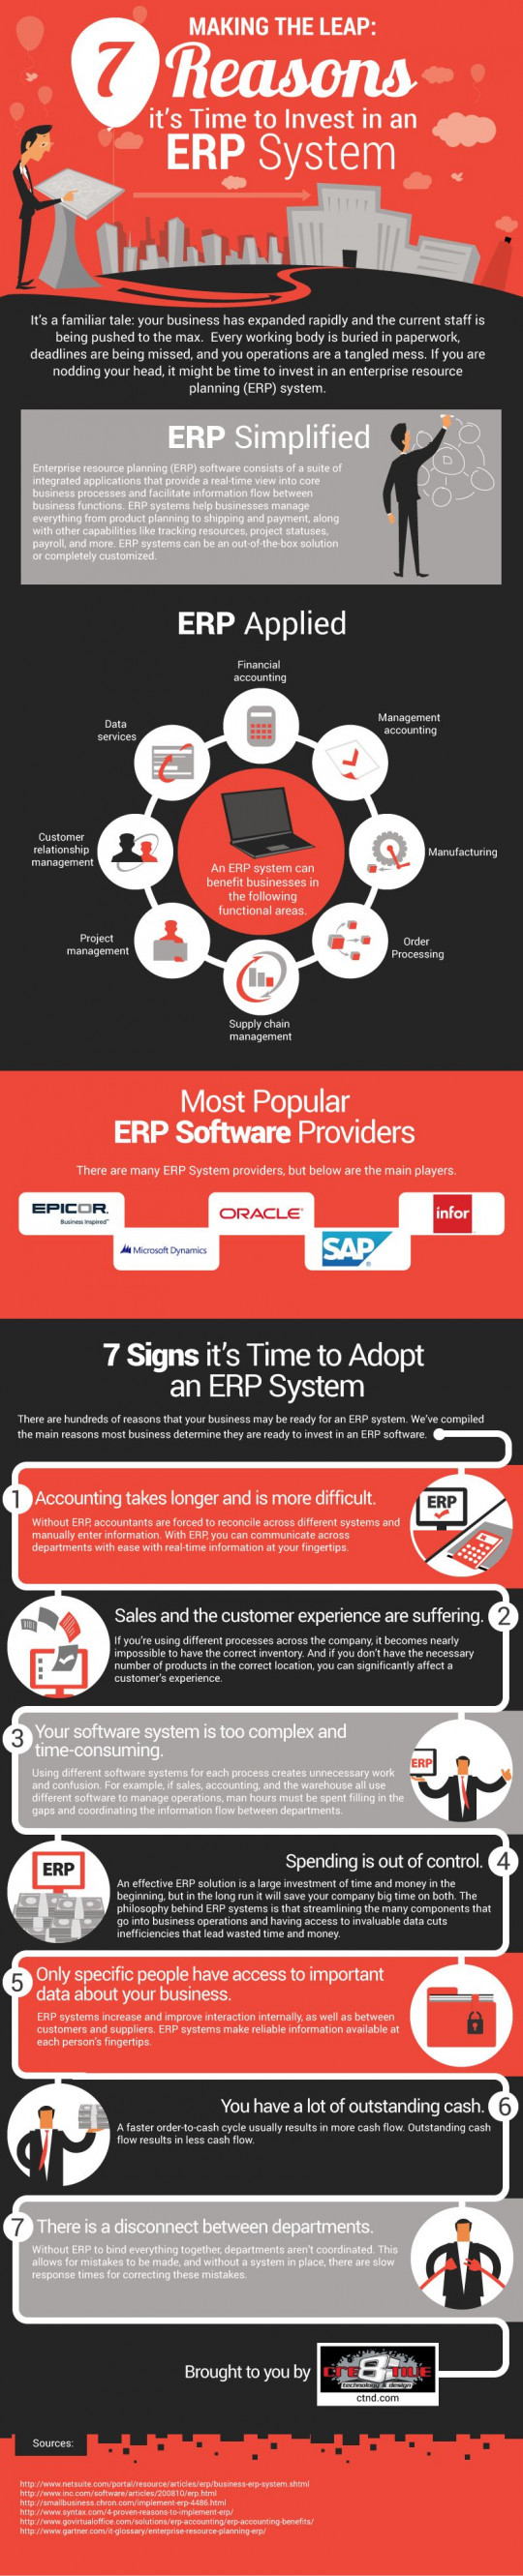 Making The Leap: 7 Reasons itâ??s Time to Invest in an ERP System